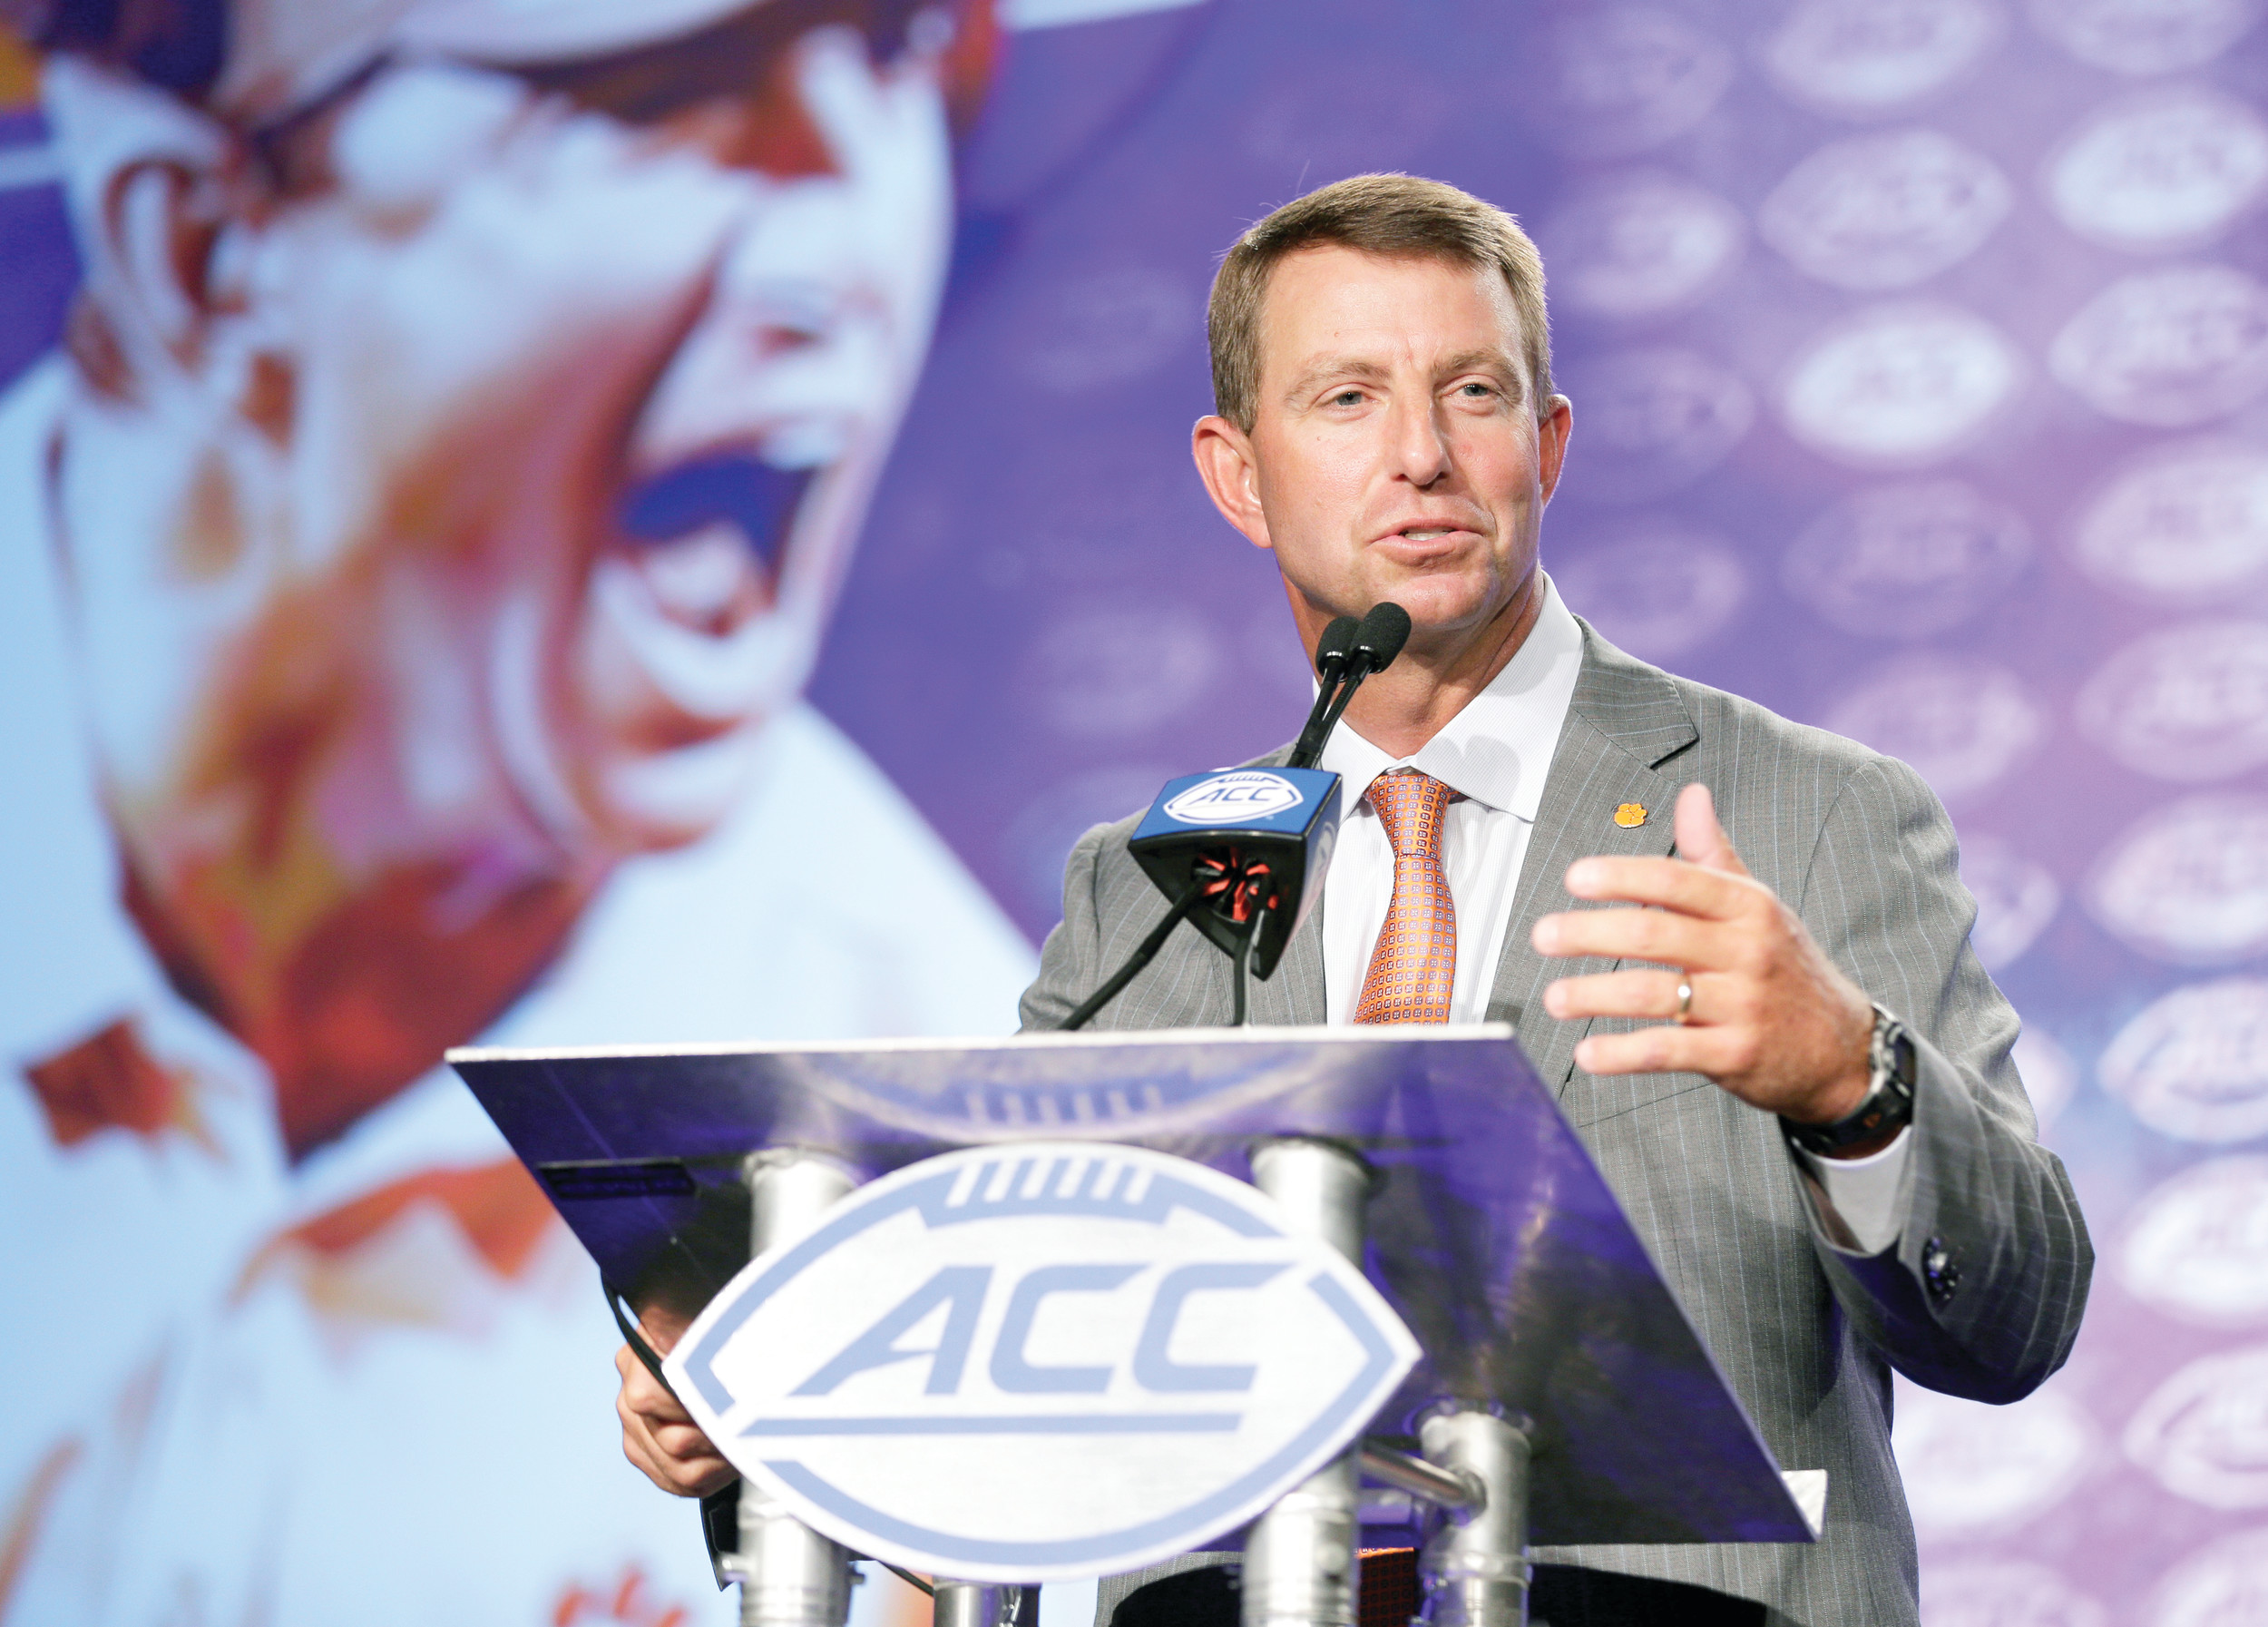 Clemson head coach Dabo Swinney speaks to the media on Thursday at Atlantic Coast Conference media days in Charlotte. Swinney said he isn't concerned with the players he lost from last year's national championship team, but rather the potential of the players he has for this year.